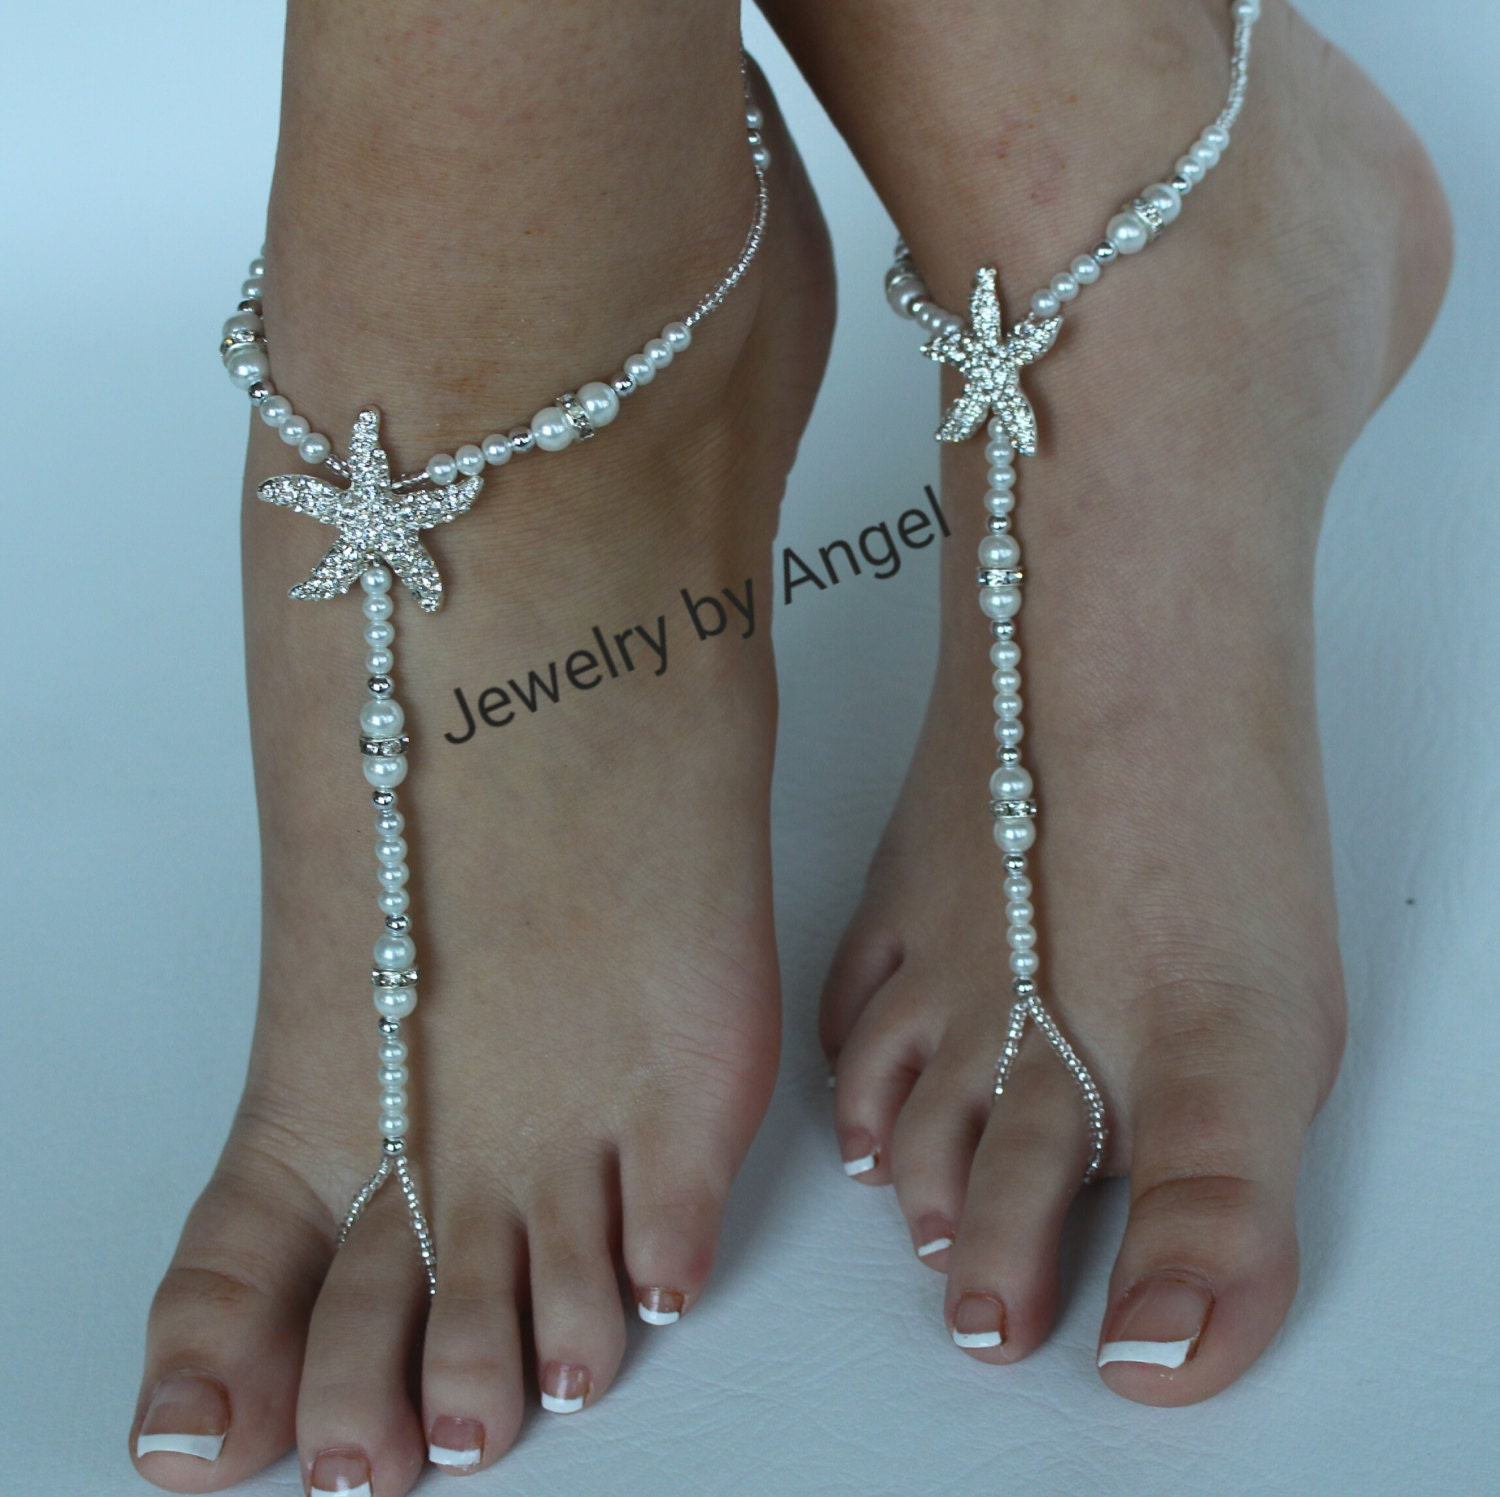 women myshoplah jewelry anklet wedding heel ankle jewellery high heels